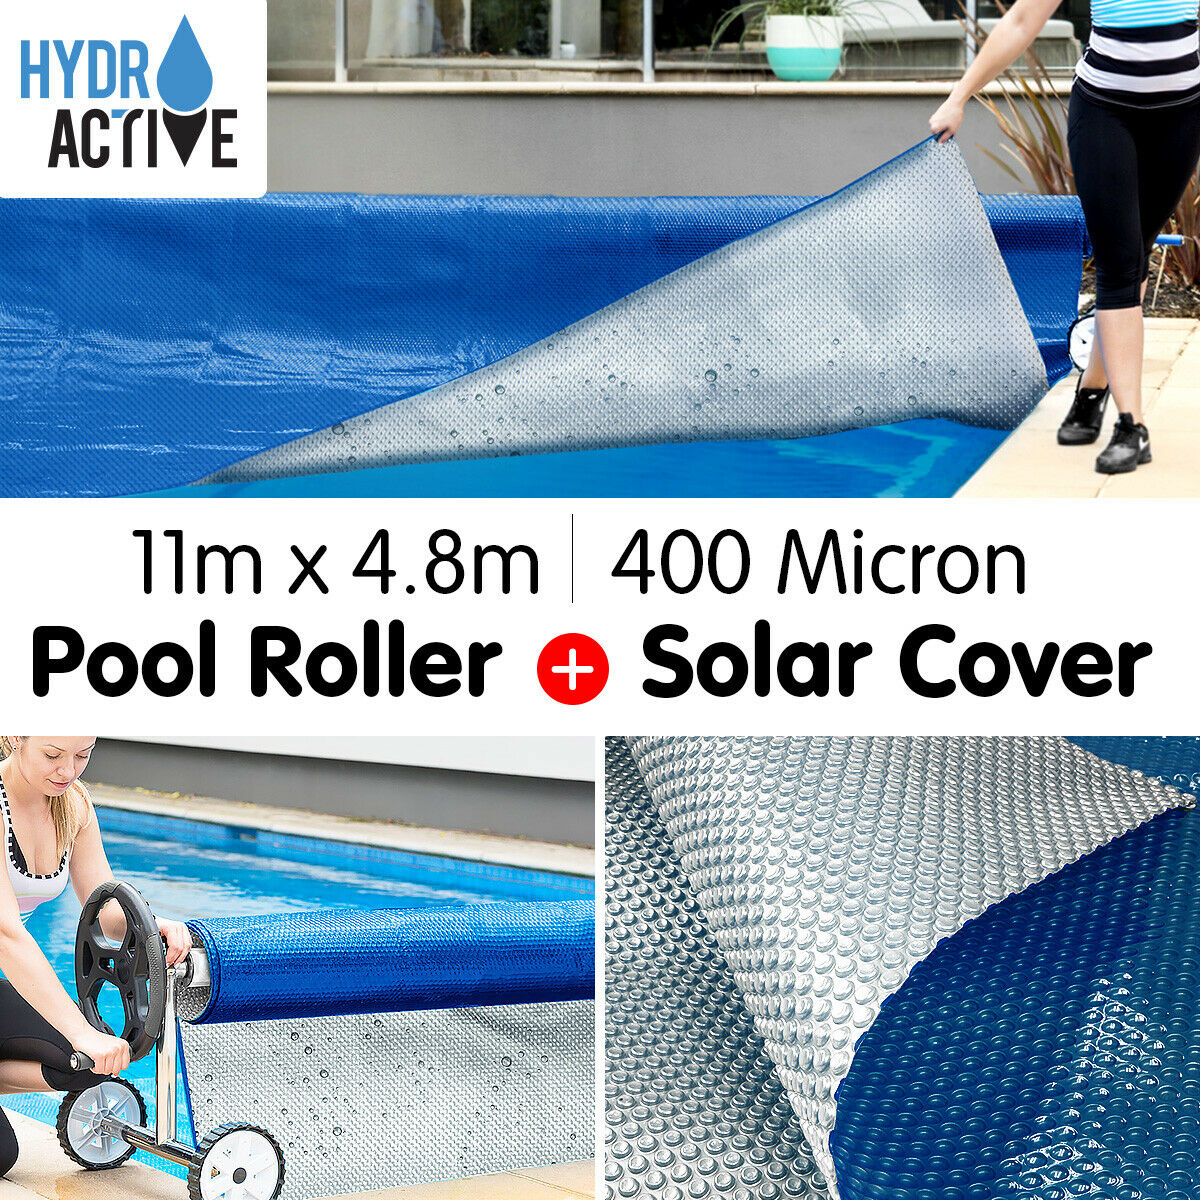 400 Micron 11m x 4.8m SOLAR SWIMMING POOL COVER BUBBLE BLANKET ROLLER HEATER